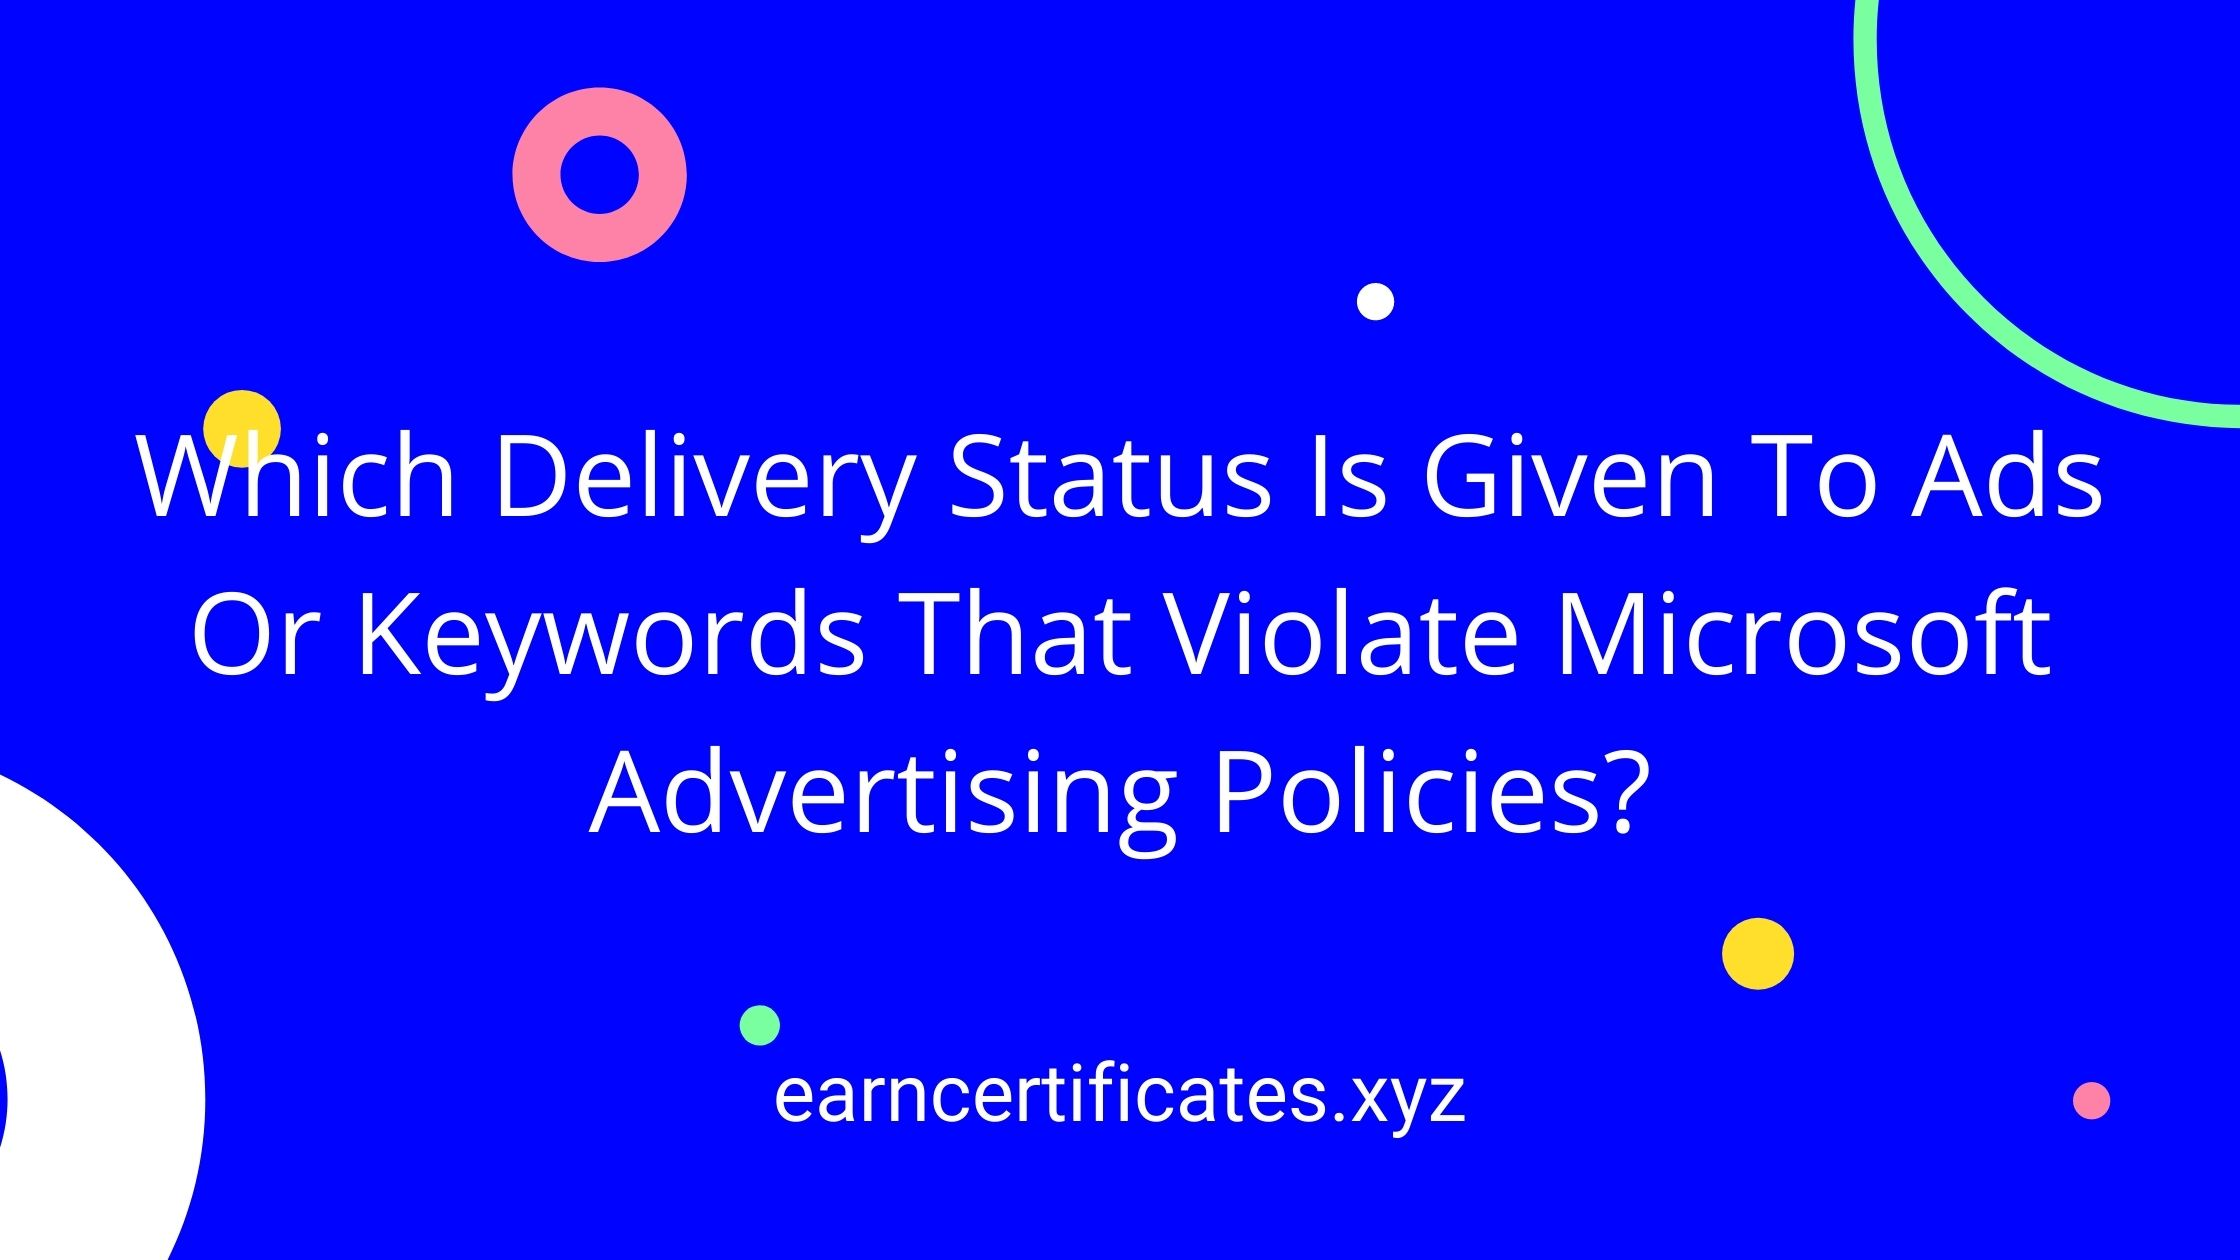 Which Delivery Status Is Given To Ads Or Keywords That Violate Microsoft Advertising Policies?